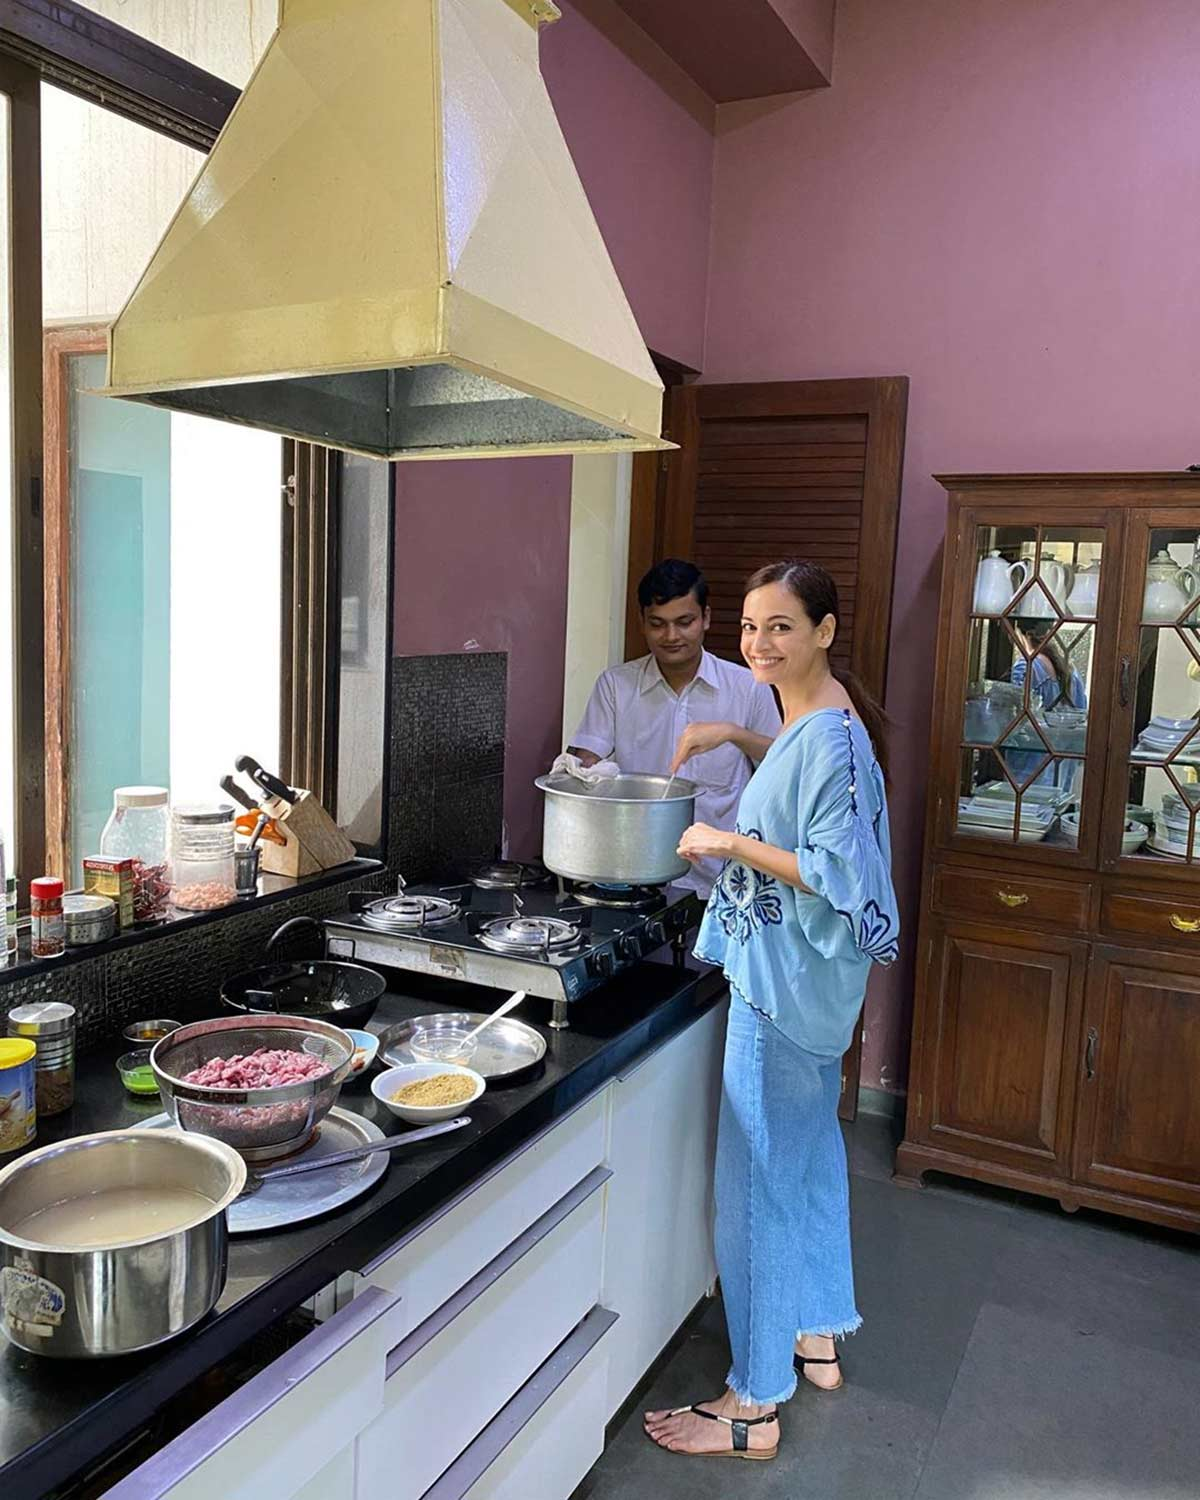 What is Dia Mirza cooking?